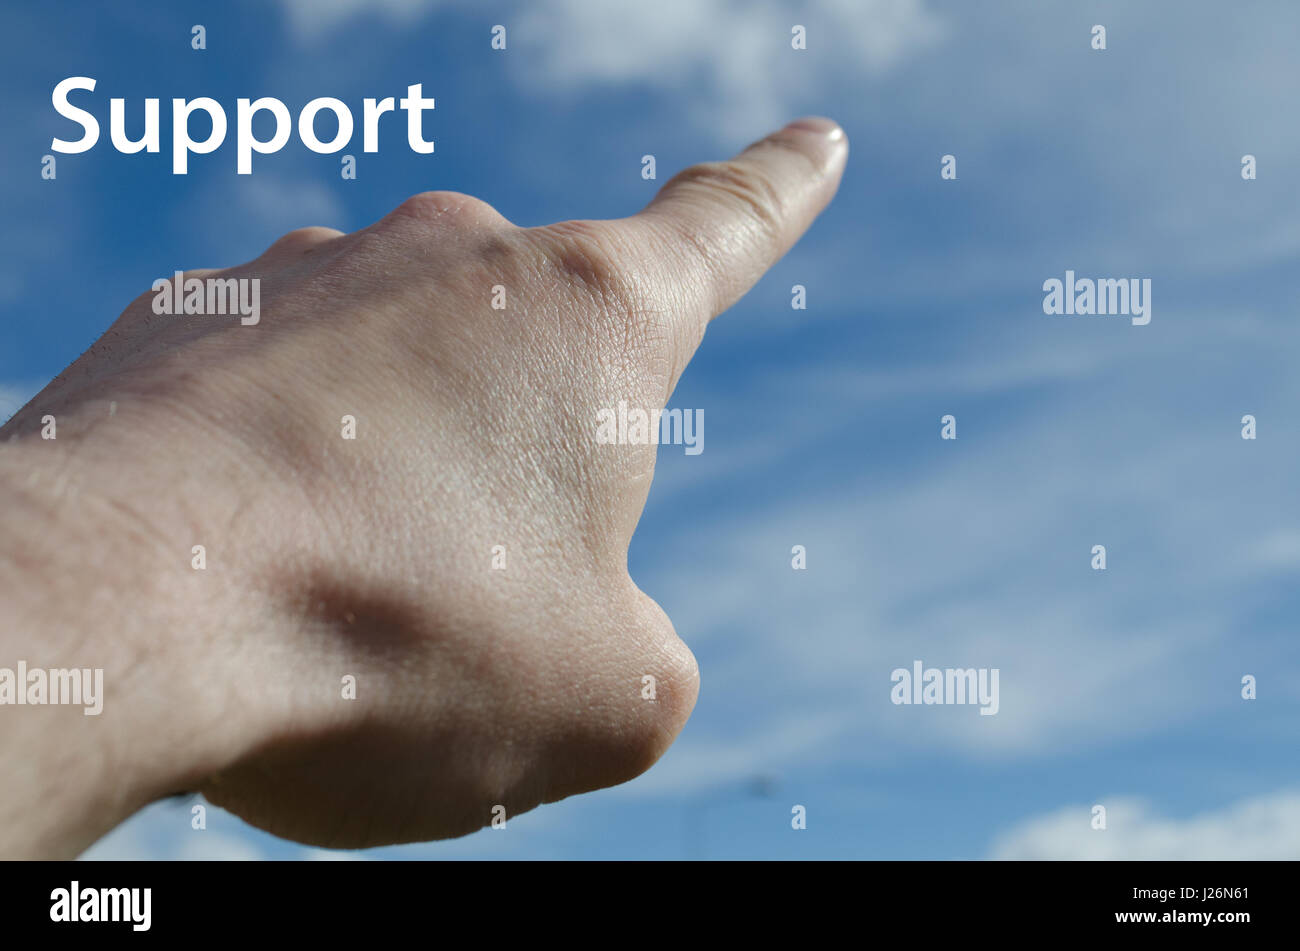 Finger pointing towards blue sky support concept - Stock Image